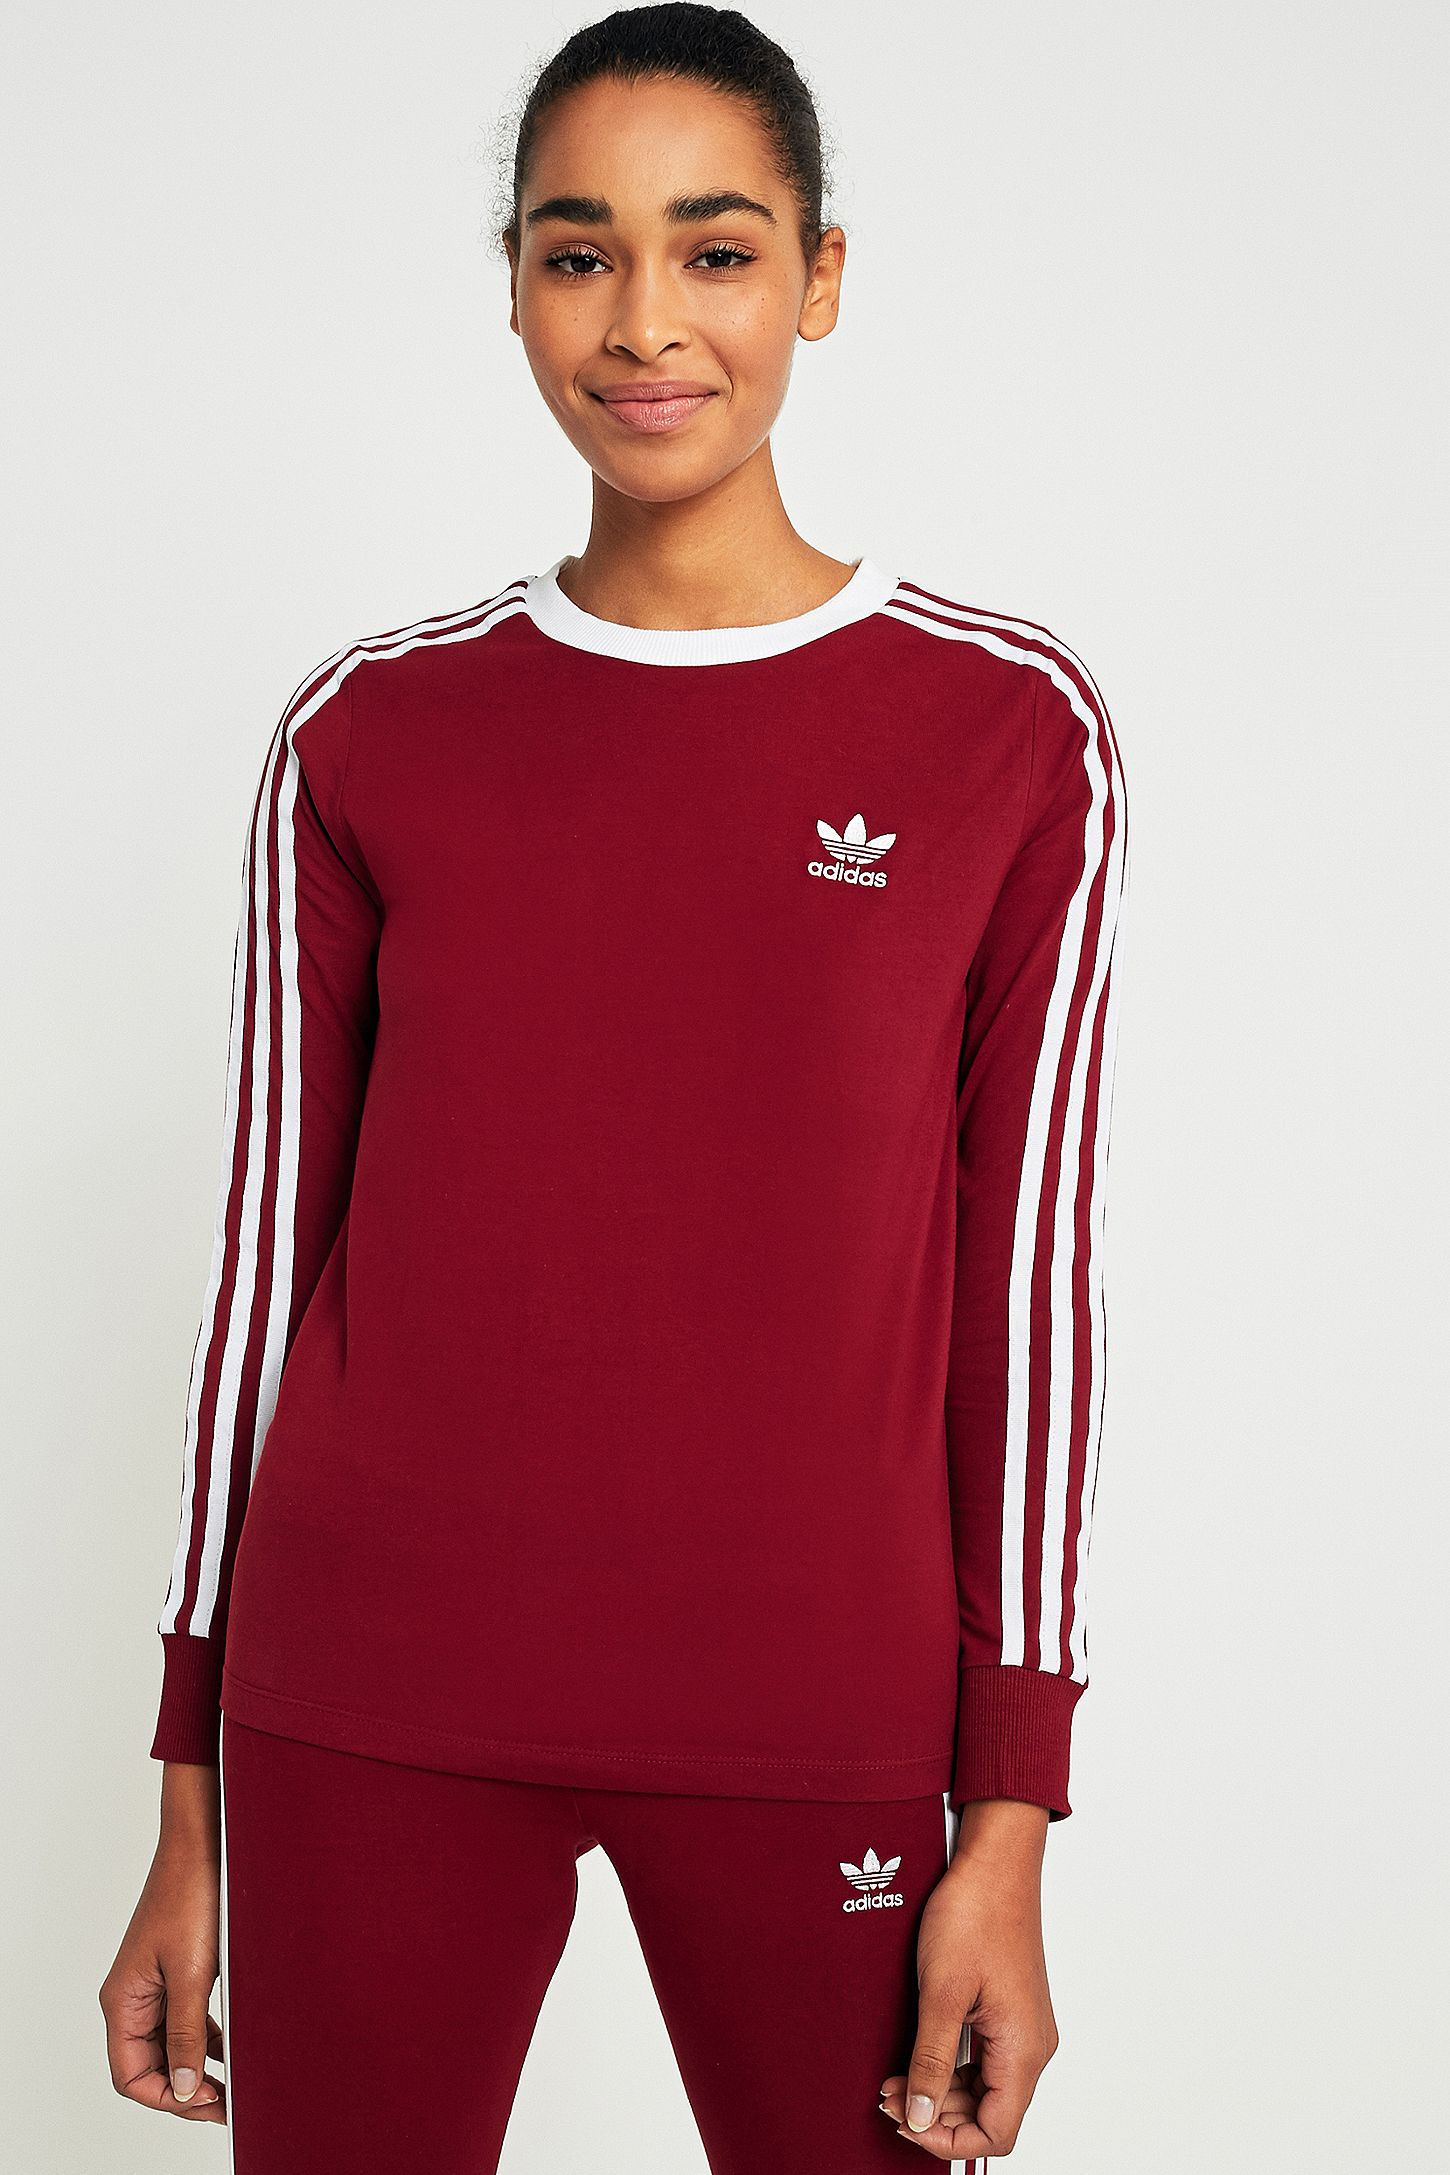 ca5481cce860bb adidas Originals 3-Stripes Long Sleeve Maroon T-shirt